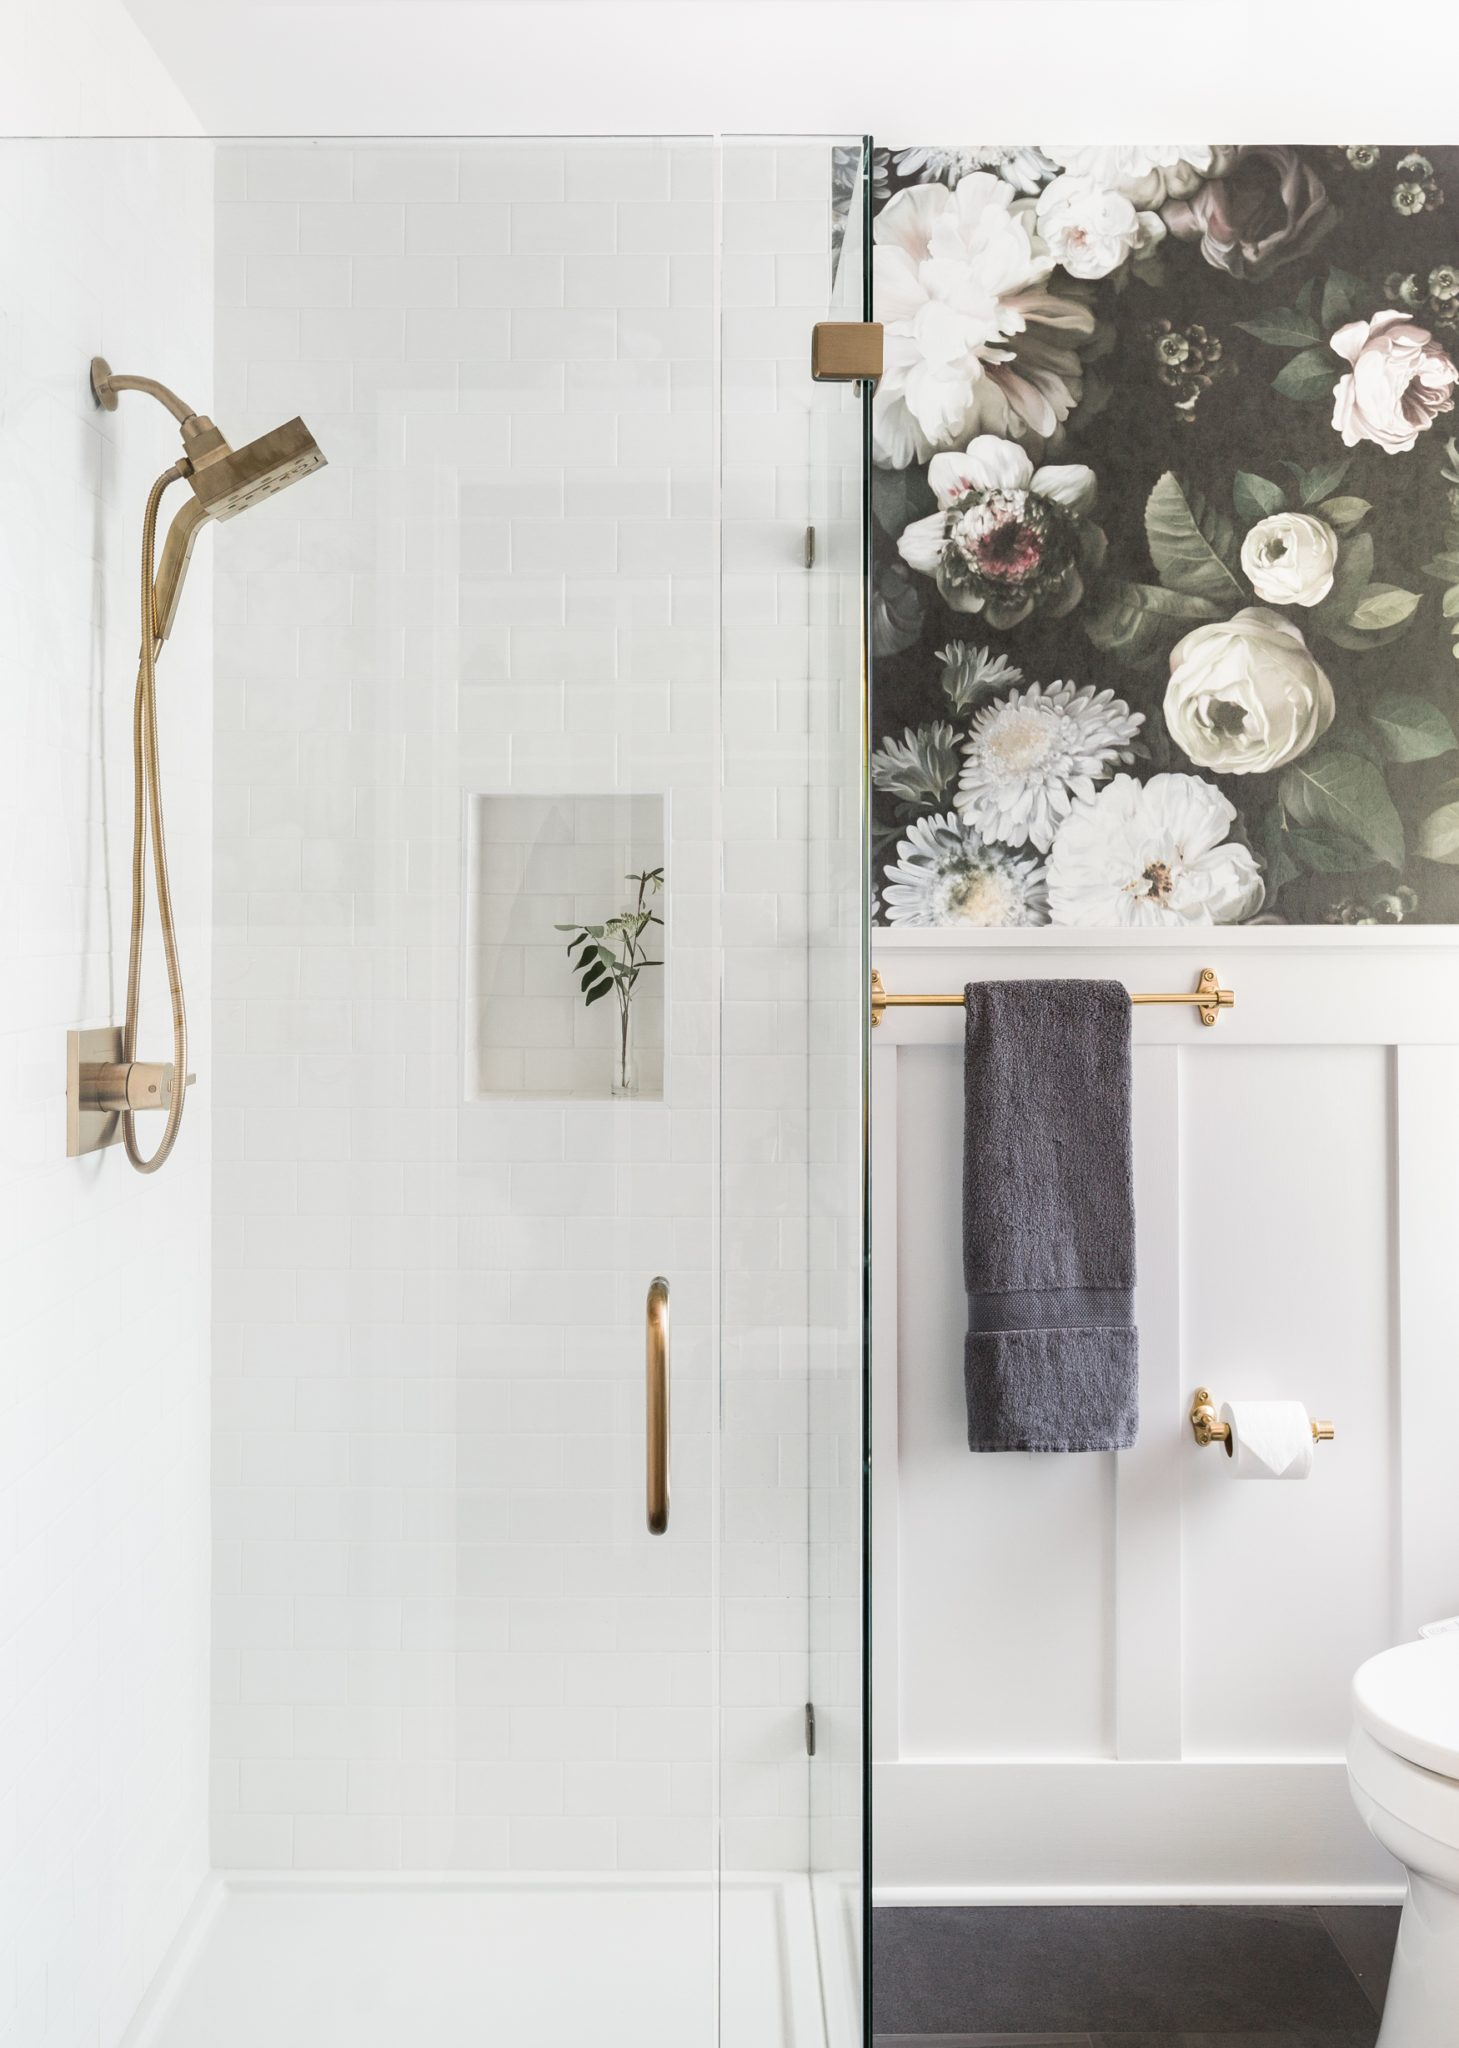 Within the shower, the hardware is from Delta Faucet; all other brass hardware in the bath is from Rejuvenation.